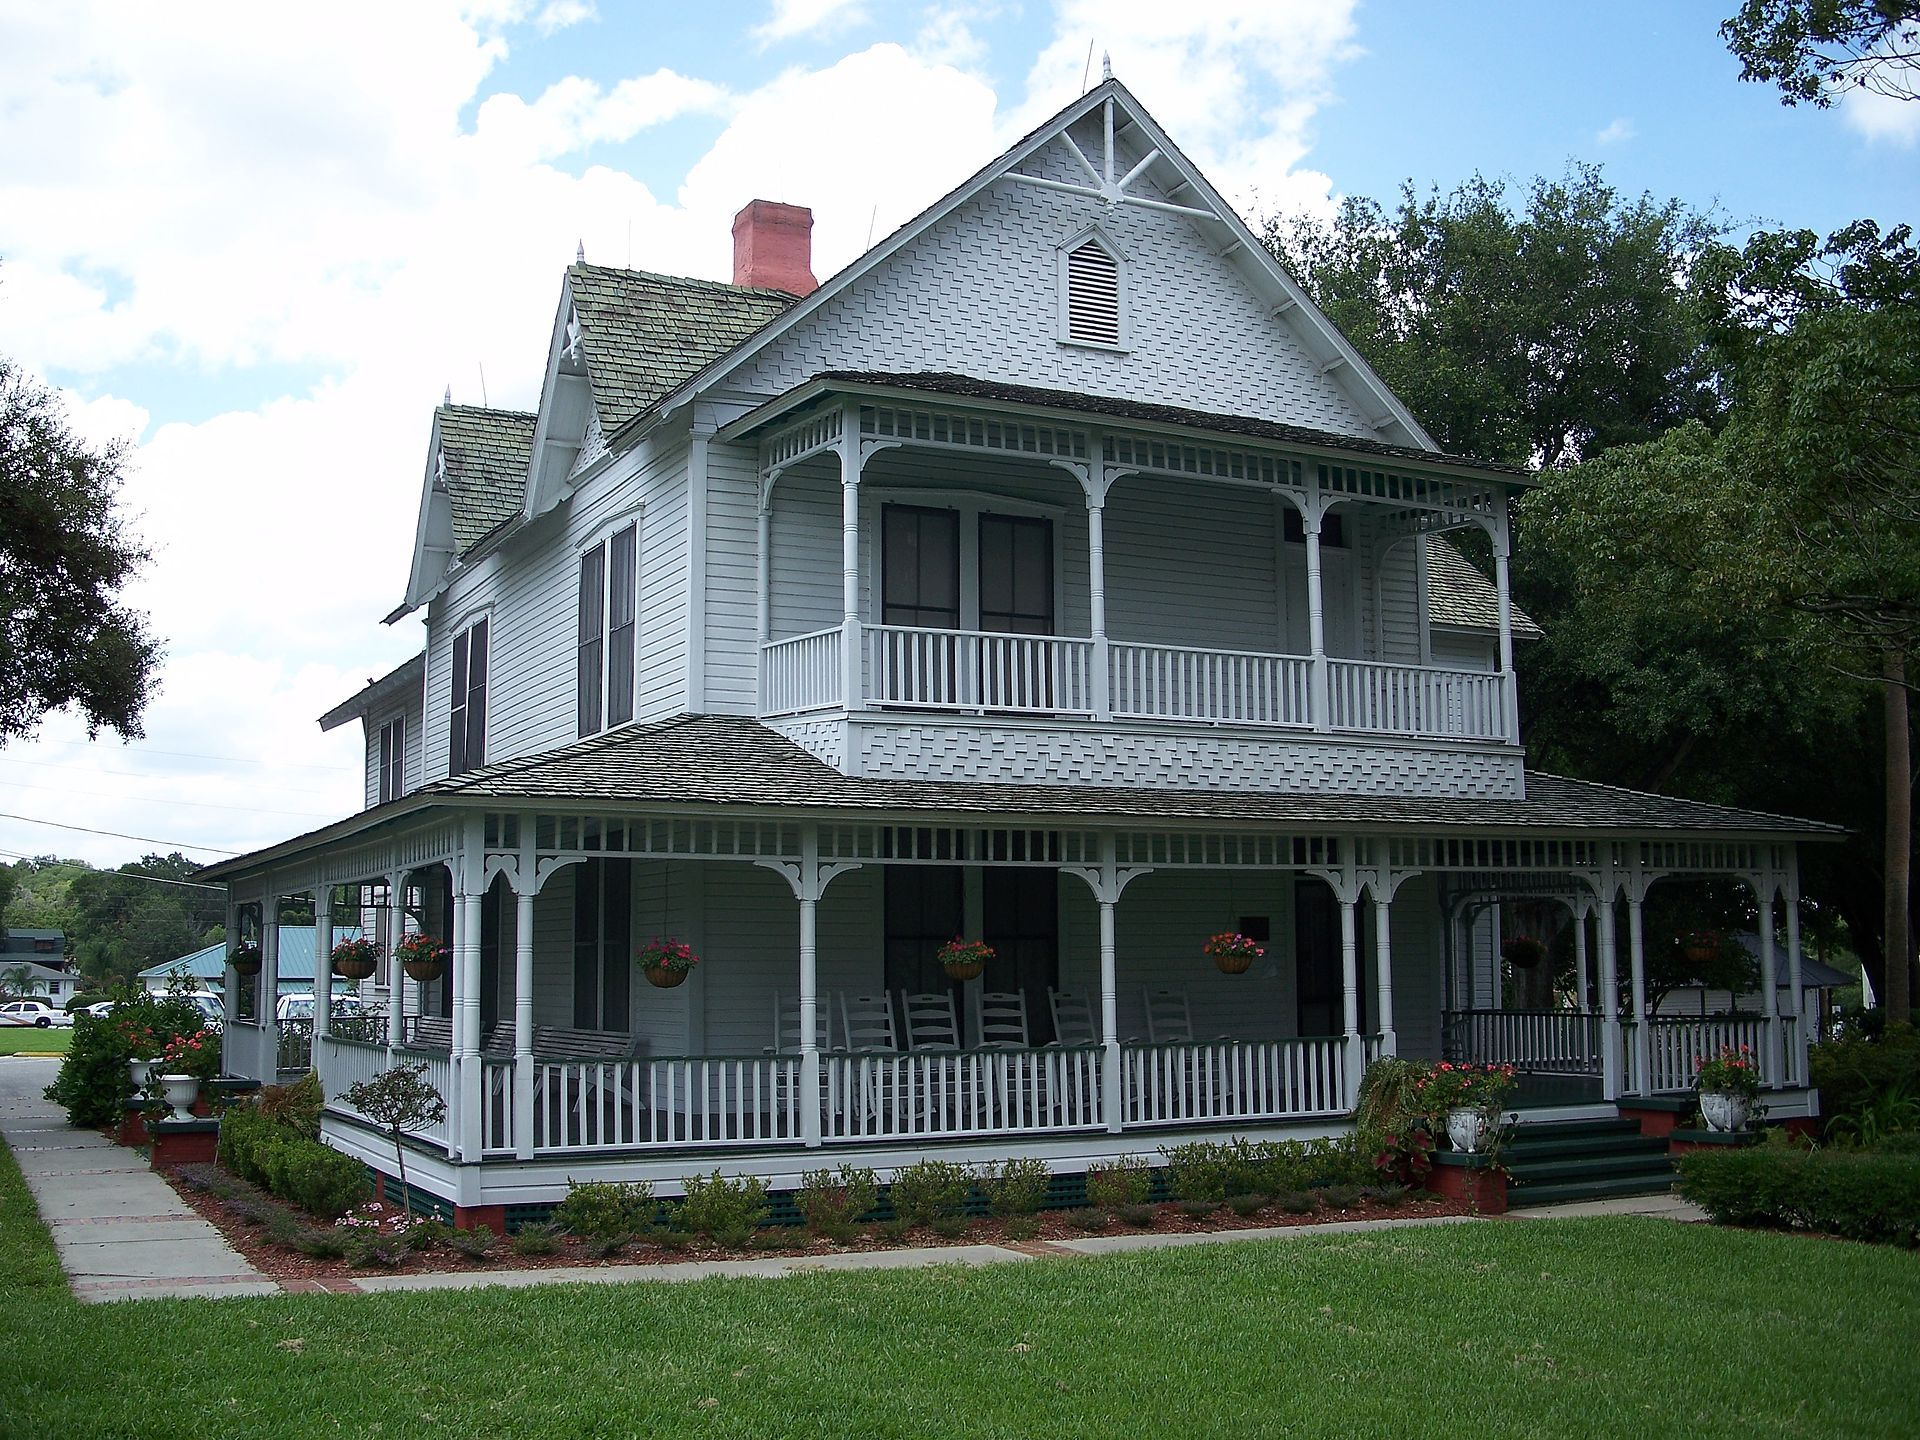 The Withers-Maguire House was built in 1888 and is today available to rent for small events and gatherings.